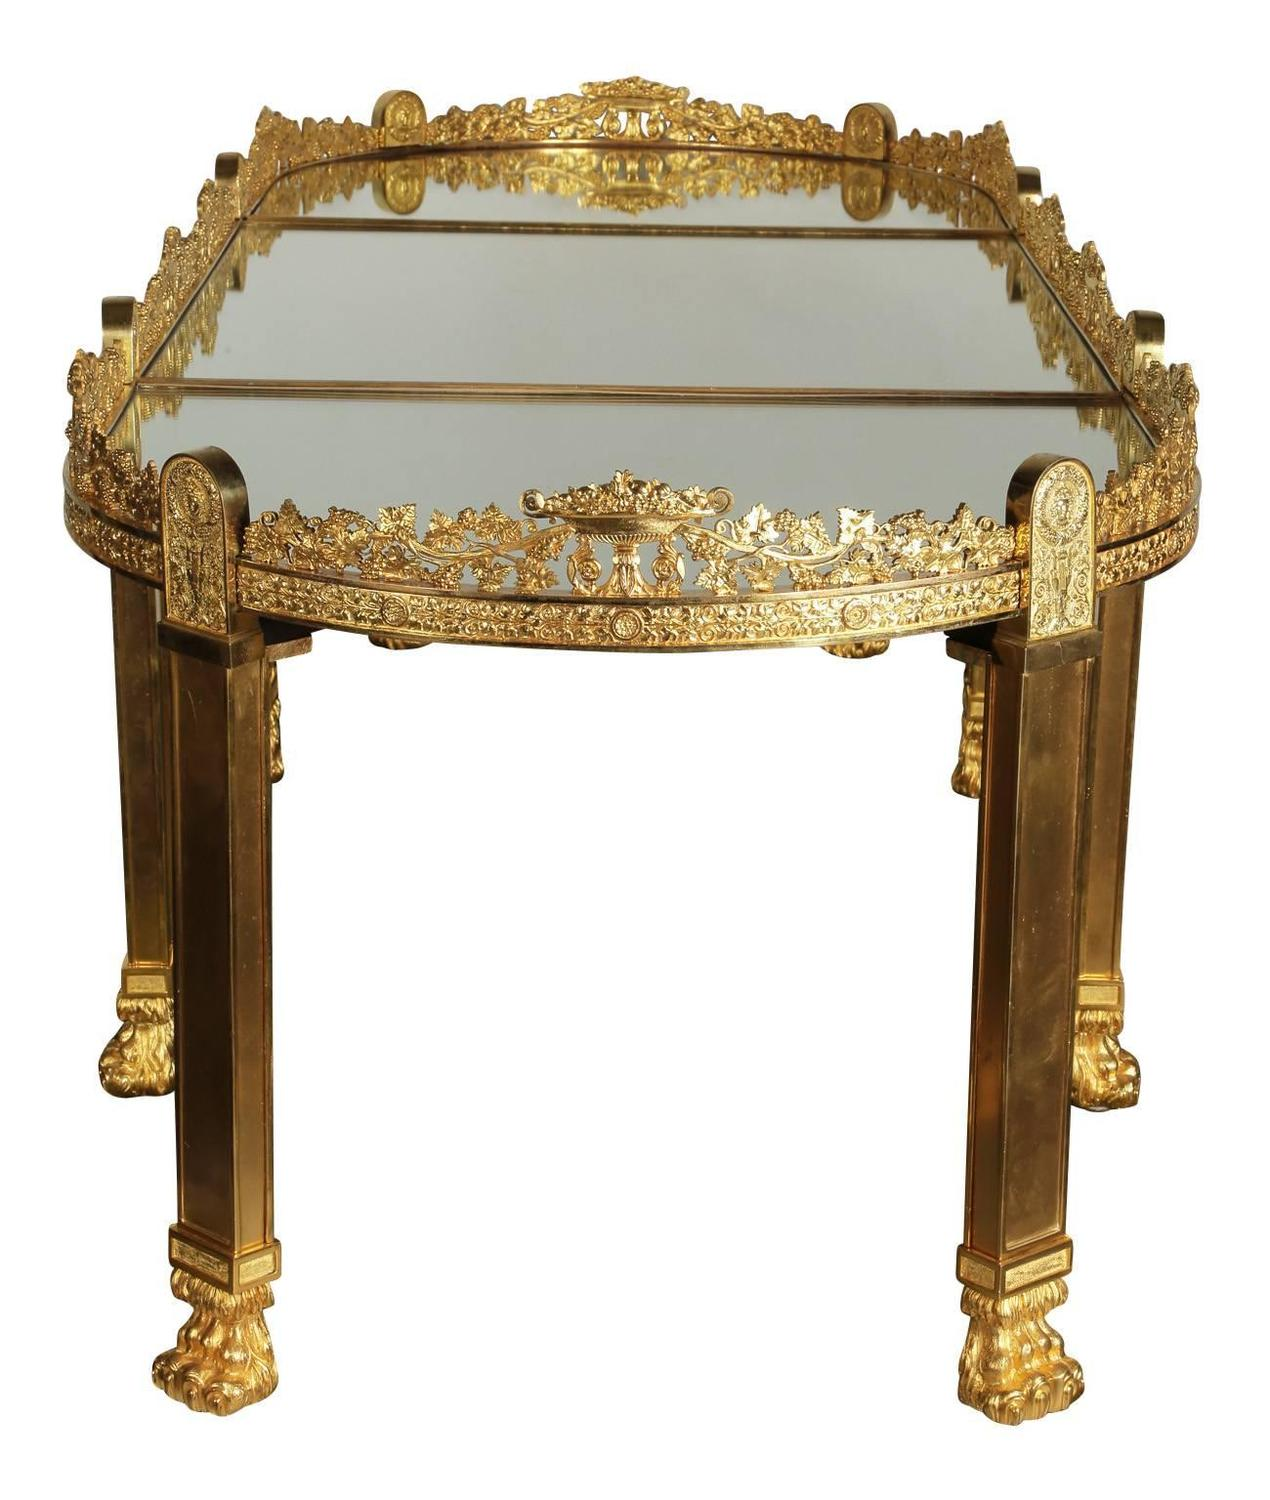 Empire Mirrored Coffee Table: Large French Empire Style Napoleon III Gilt-Bronze Surtout